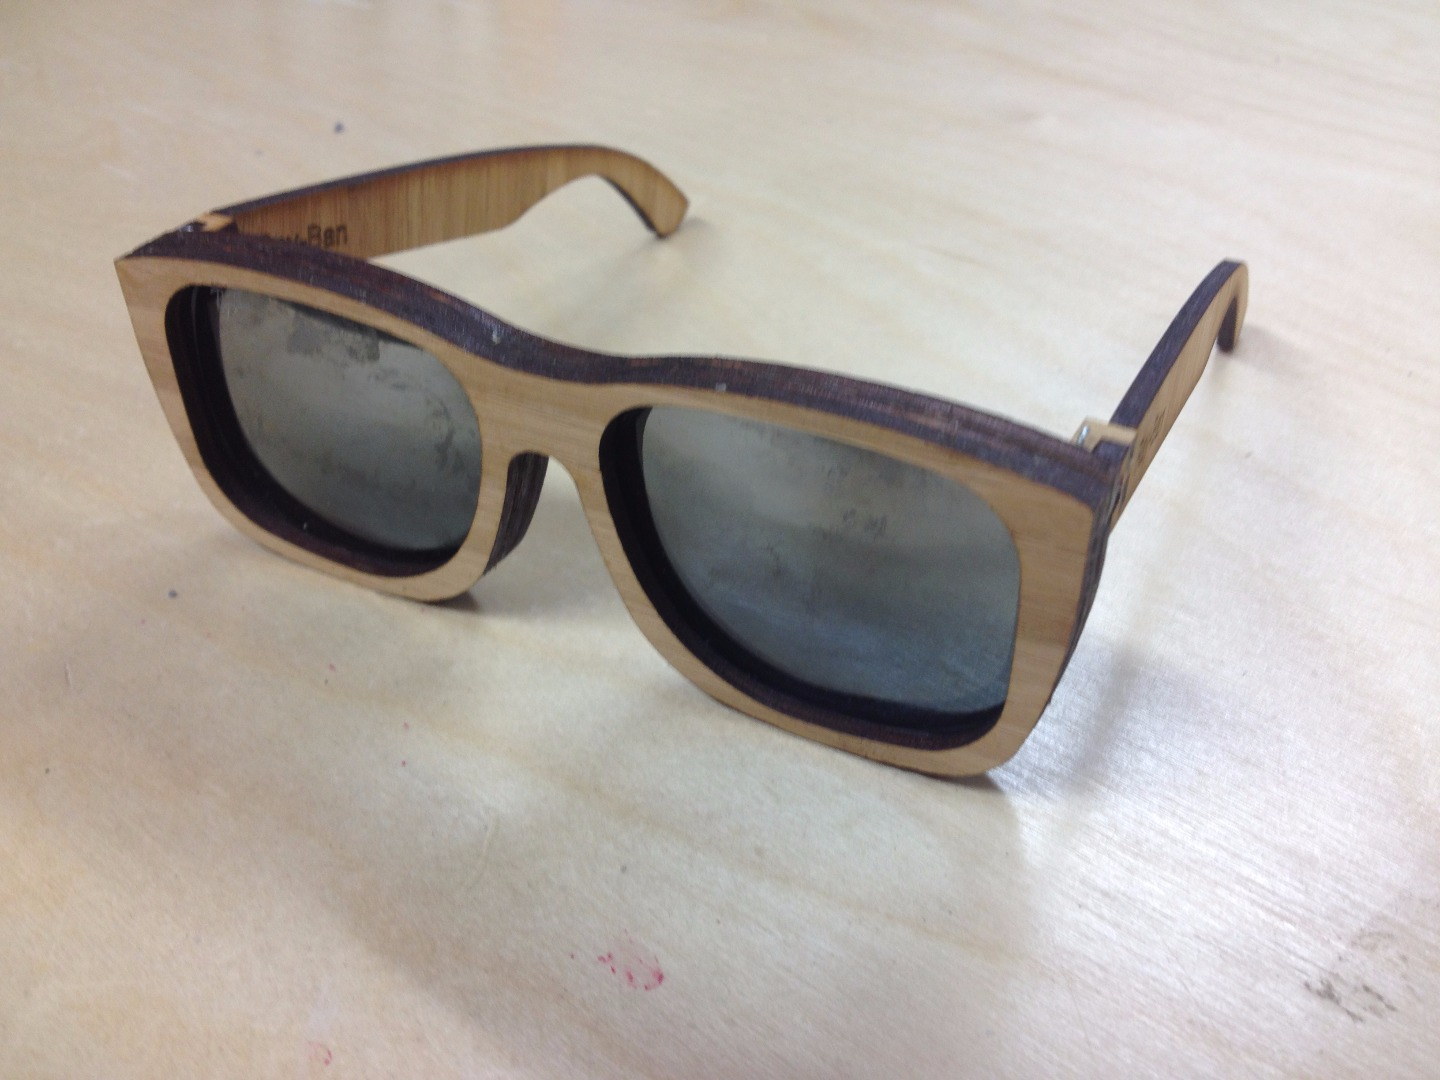 Picture of $5, No Tool, Bamboo Sunglasses